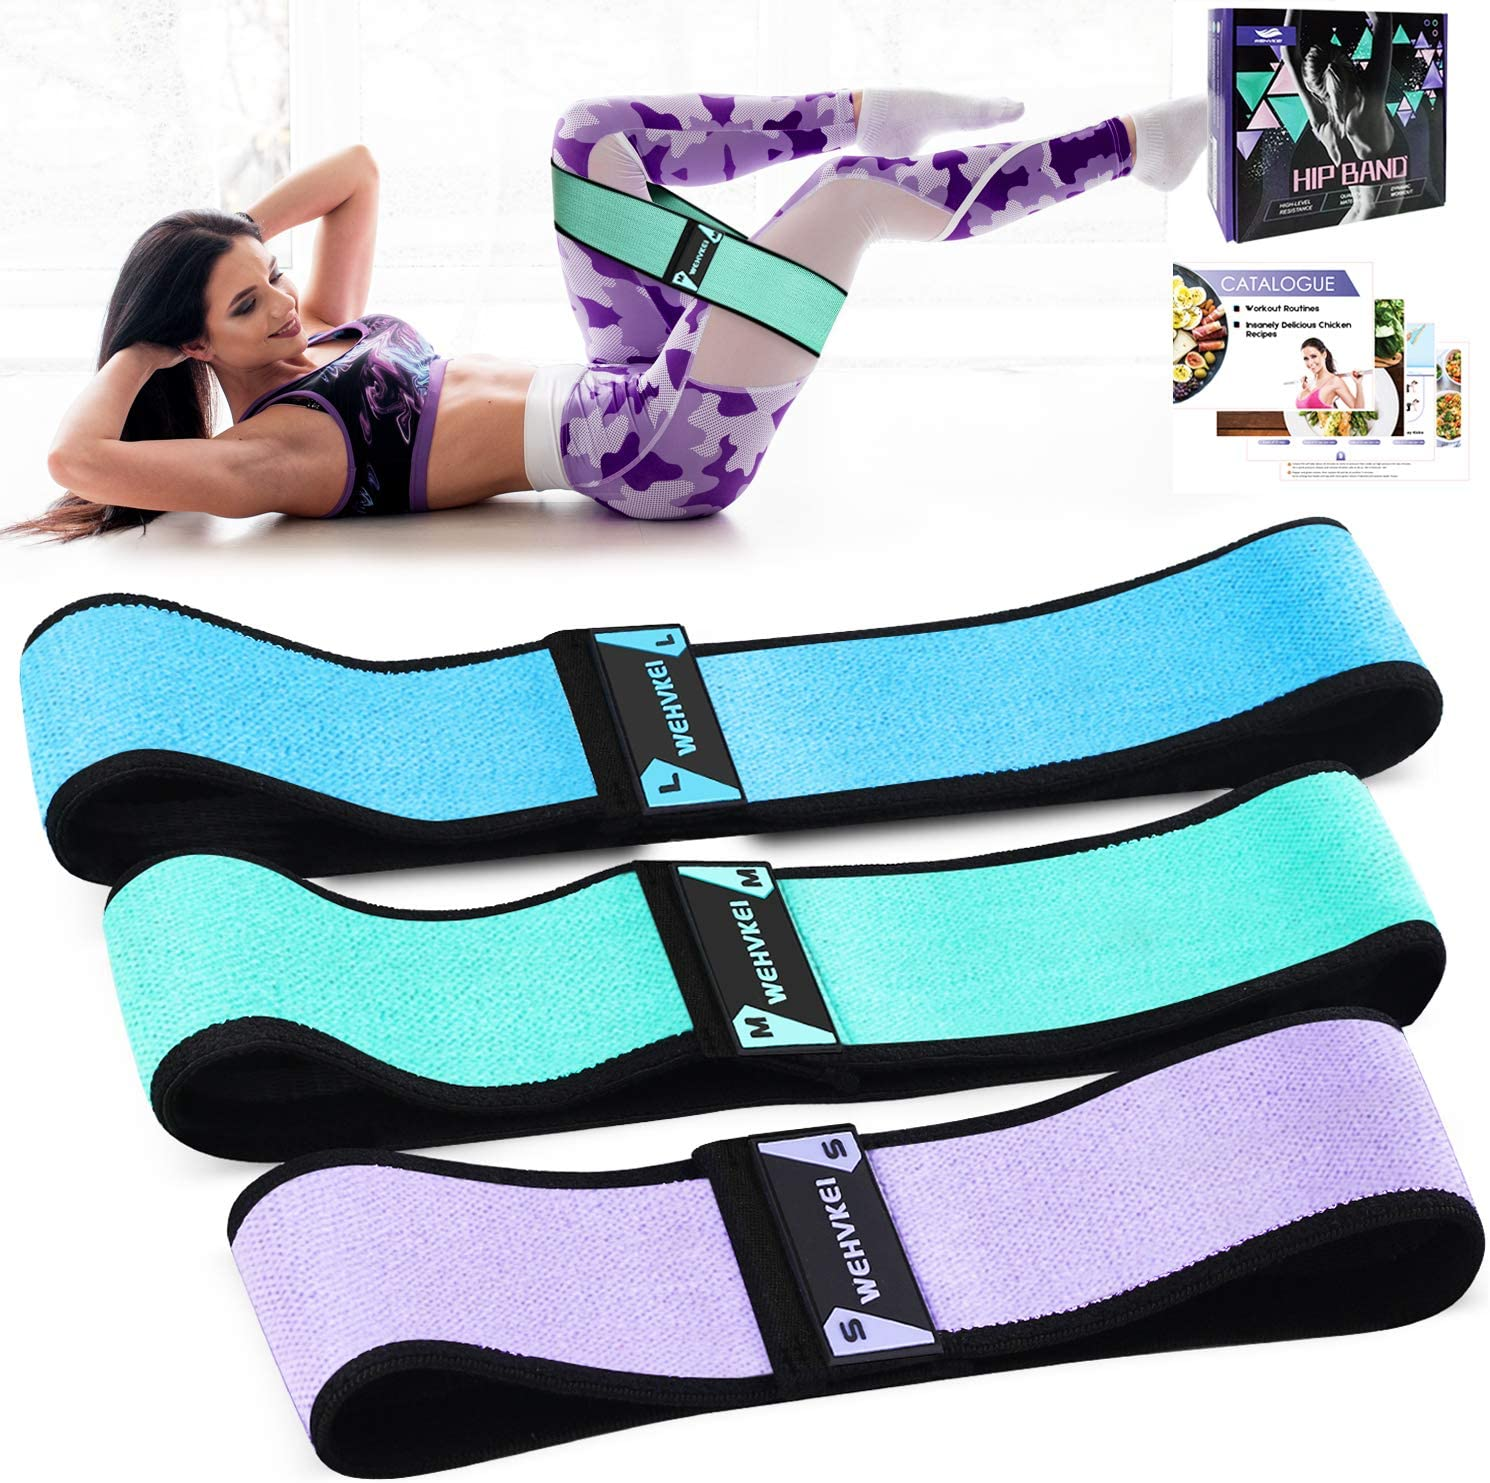 WEHVKEI Fabric Exercise Resistance Bands for Legs and Butt Perfect Activate Glutes and Thighs - Hip Loop Bands Circle, Non-Rolling Thick Wide Workout Resistance Set for Women and Men